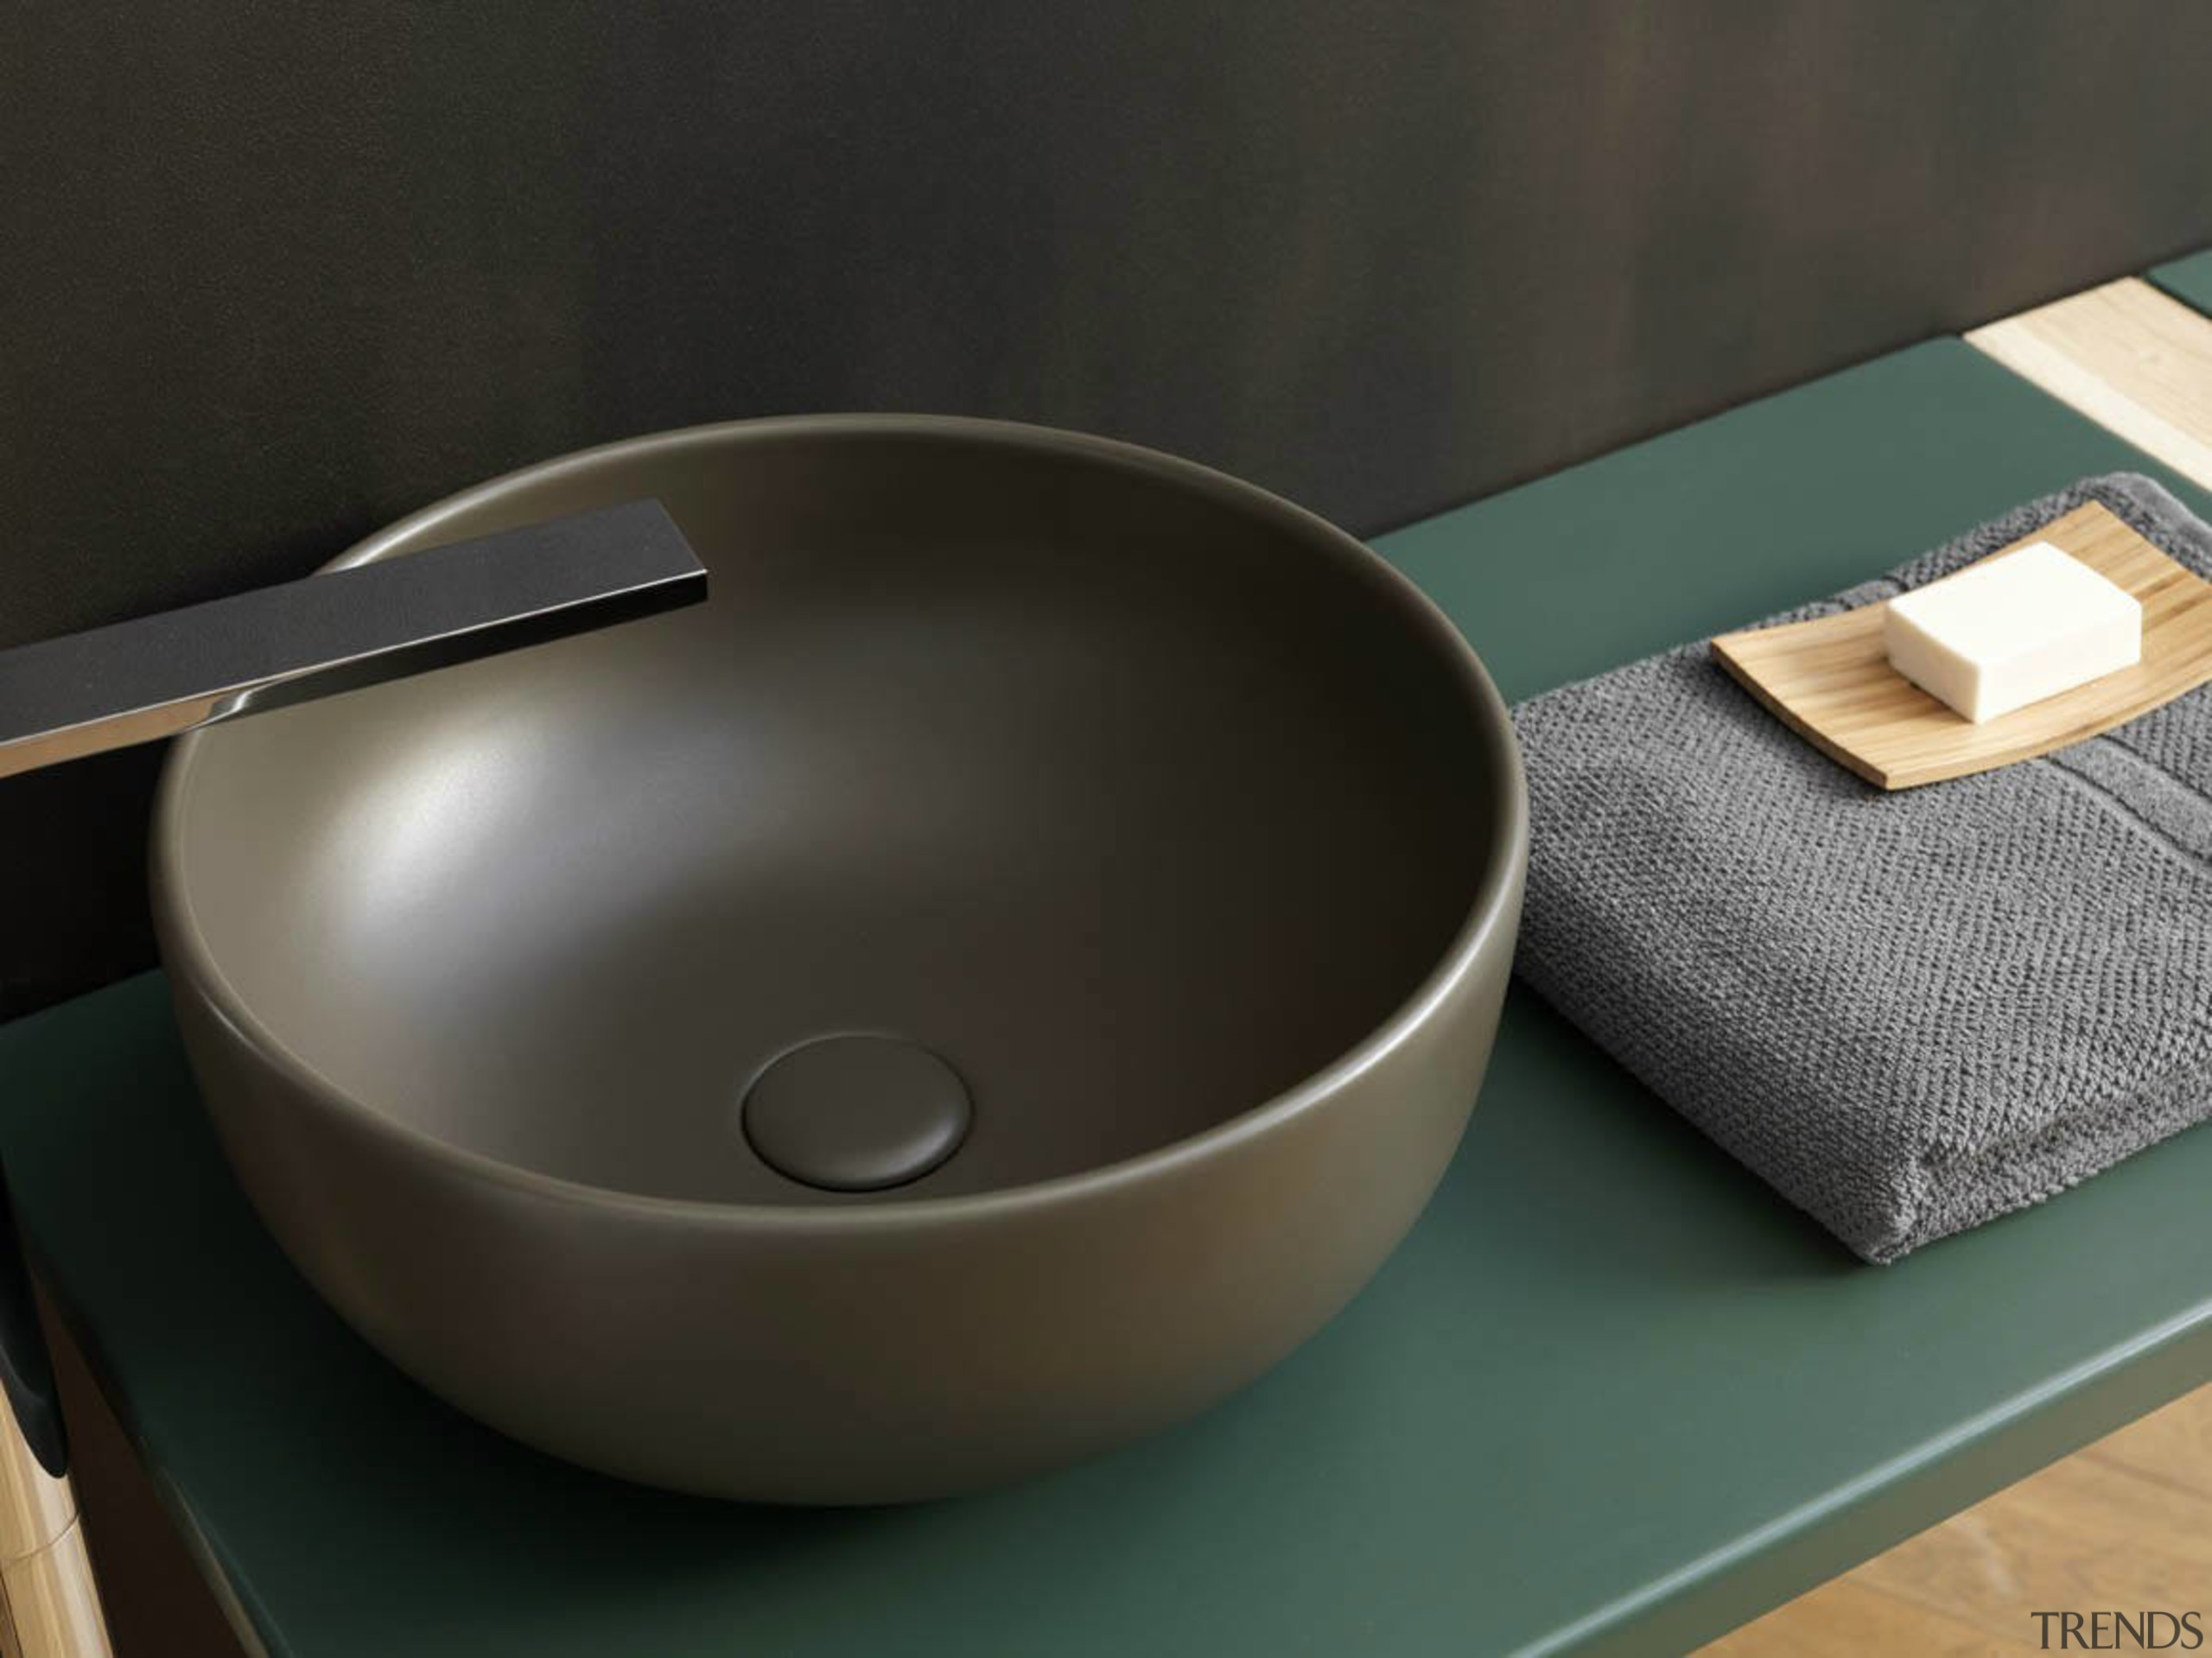 This basin forms part of the Fluid collection bathroom sink, ceramic, cookware and bakeware, plumbing fixture, product design, sink, tableware, black